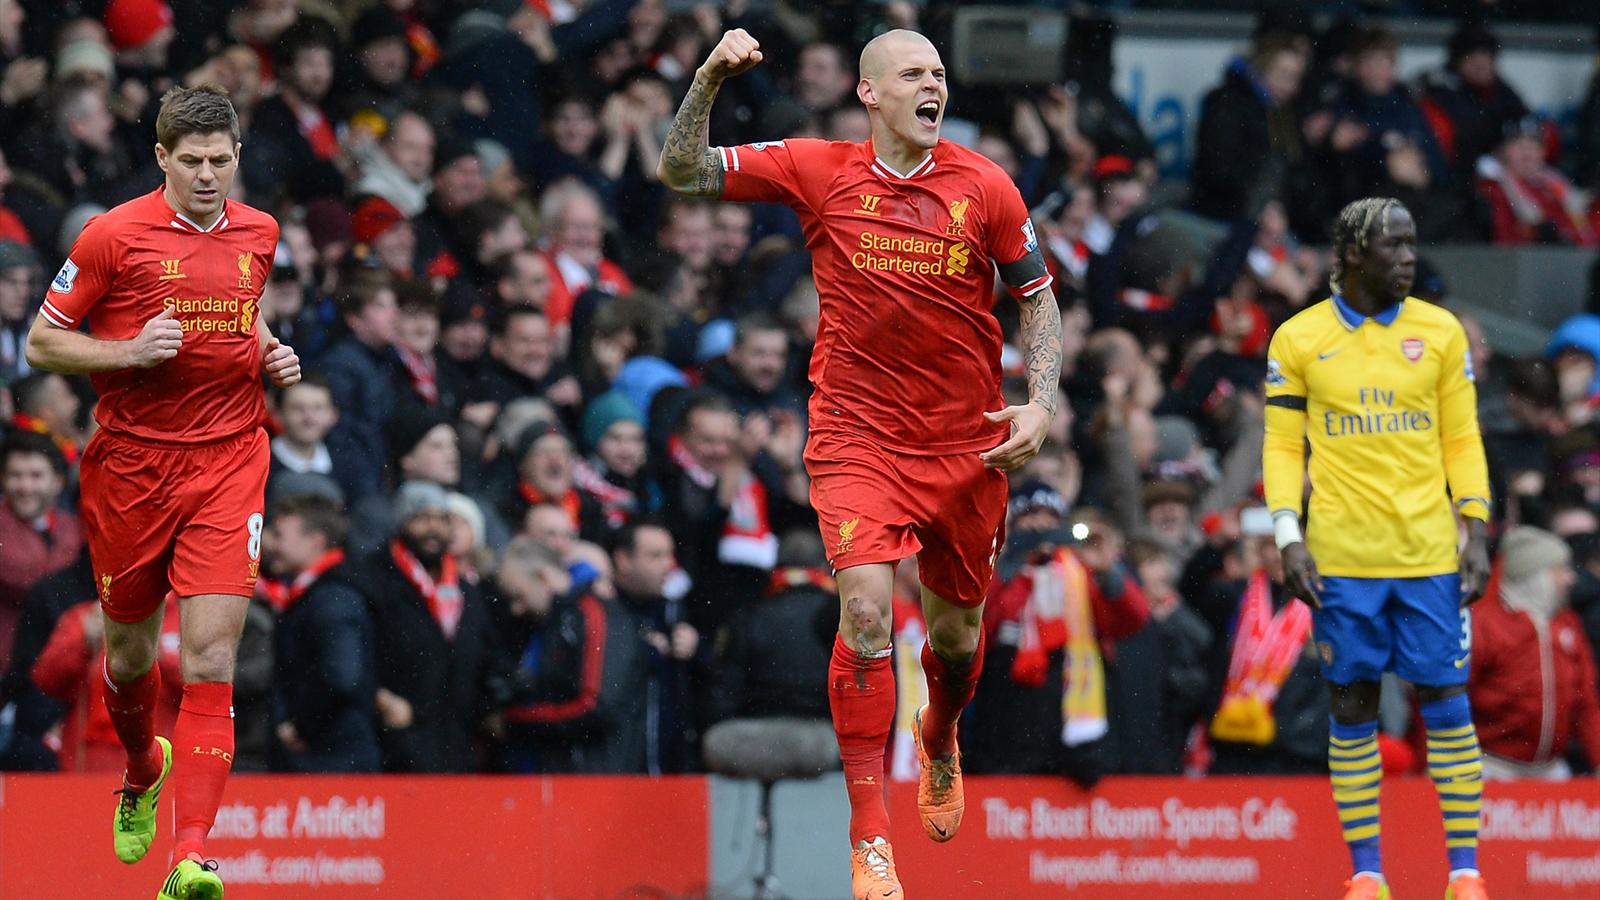 Martin Skrtel celebrates putting Liverpool ahead after a minute against Arsenal (AFP)